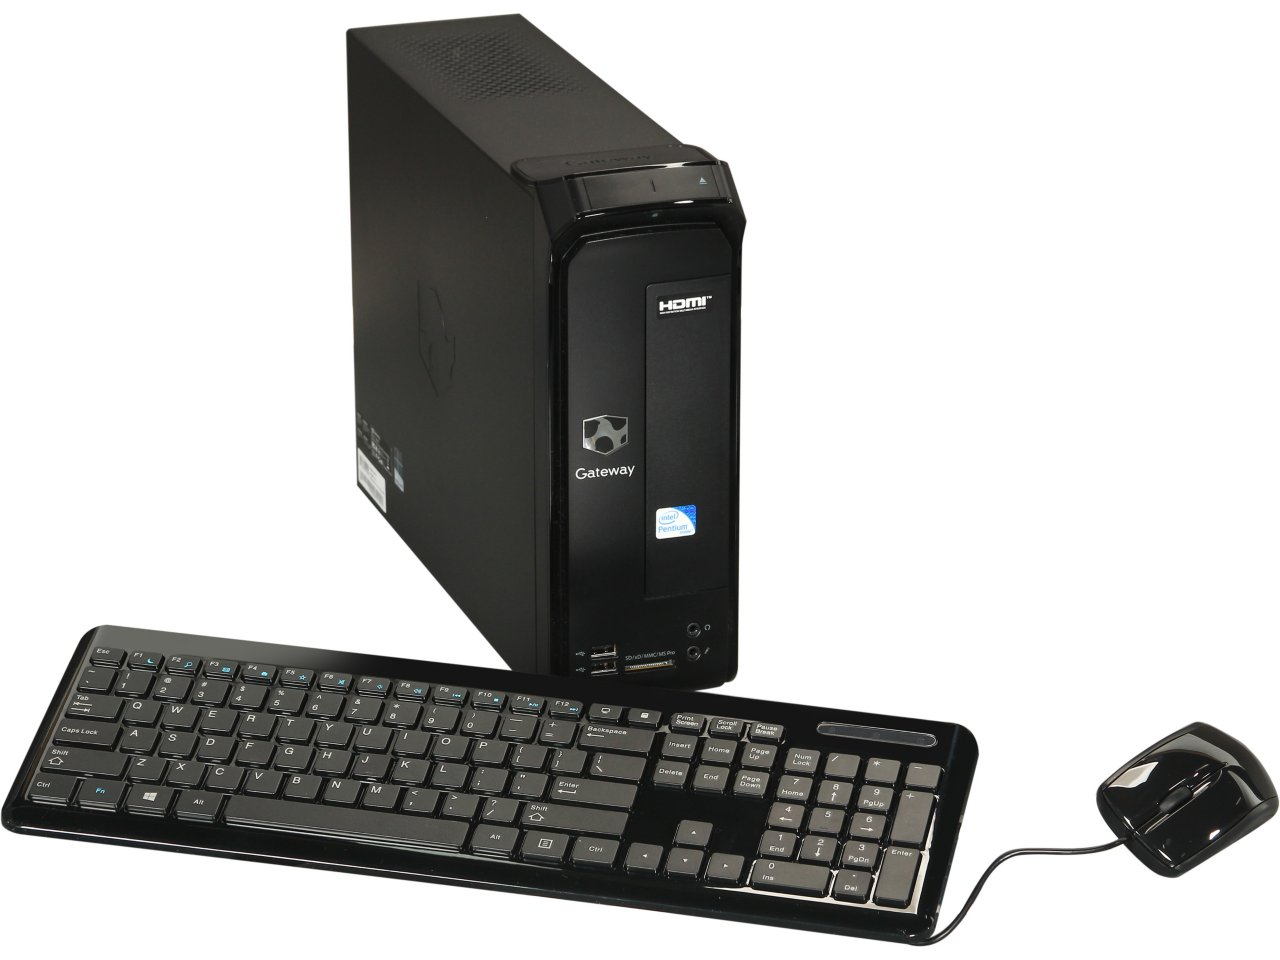 z out of stock  Gateway Black SX2865-UR15 Desktop PC with Intel